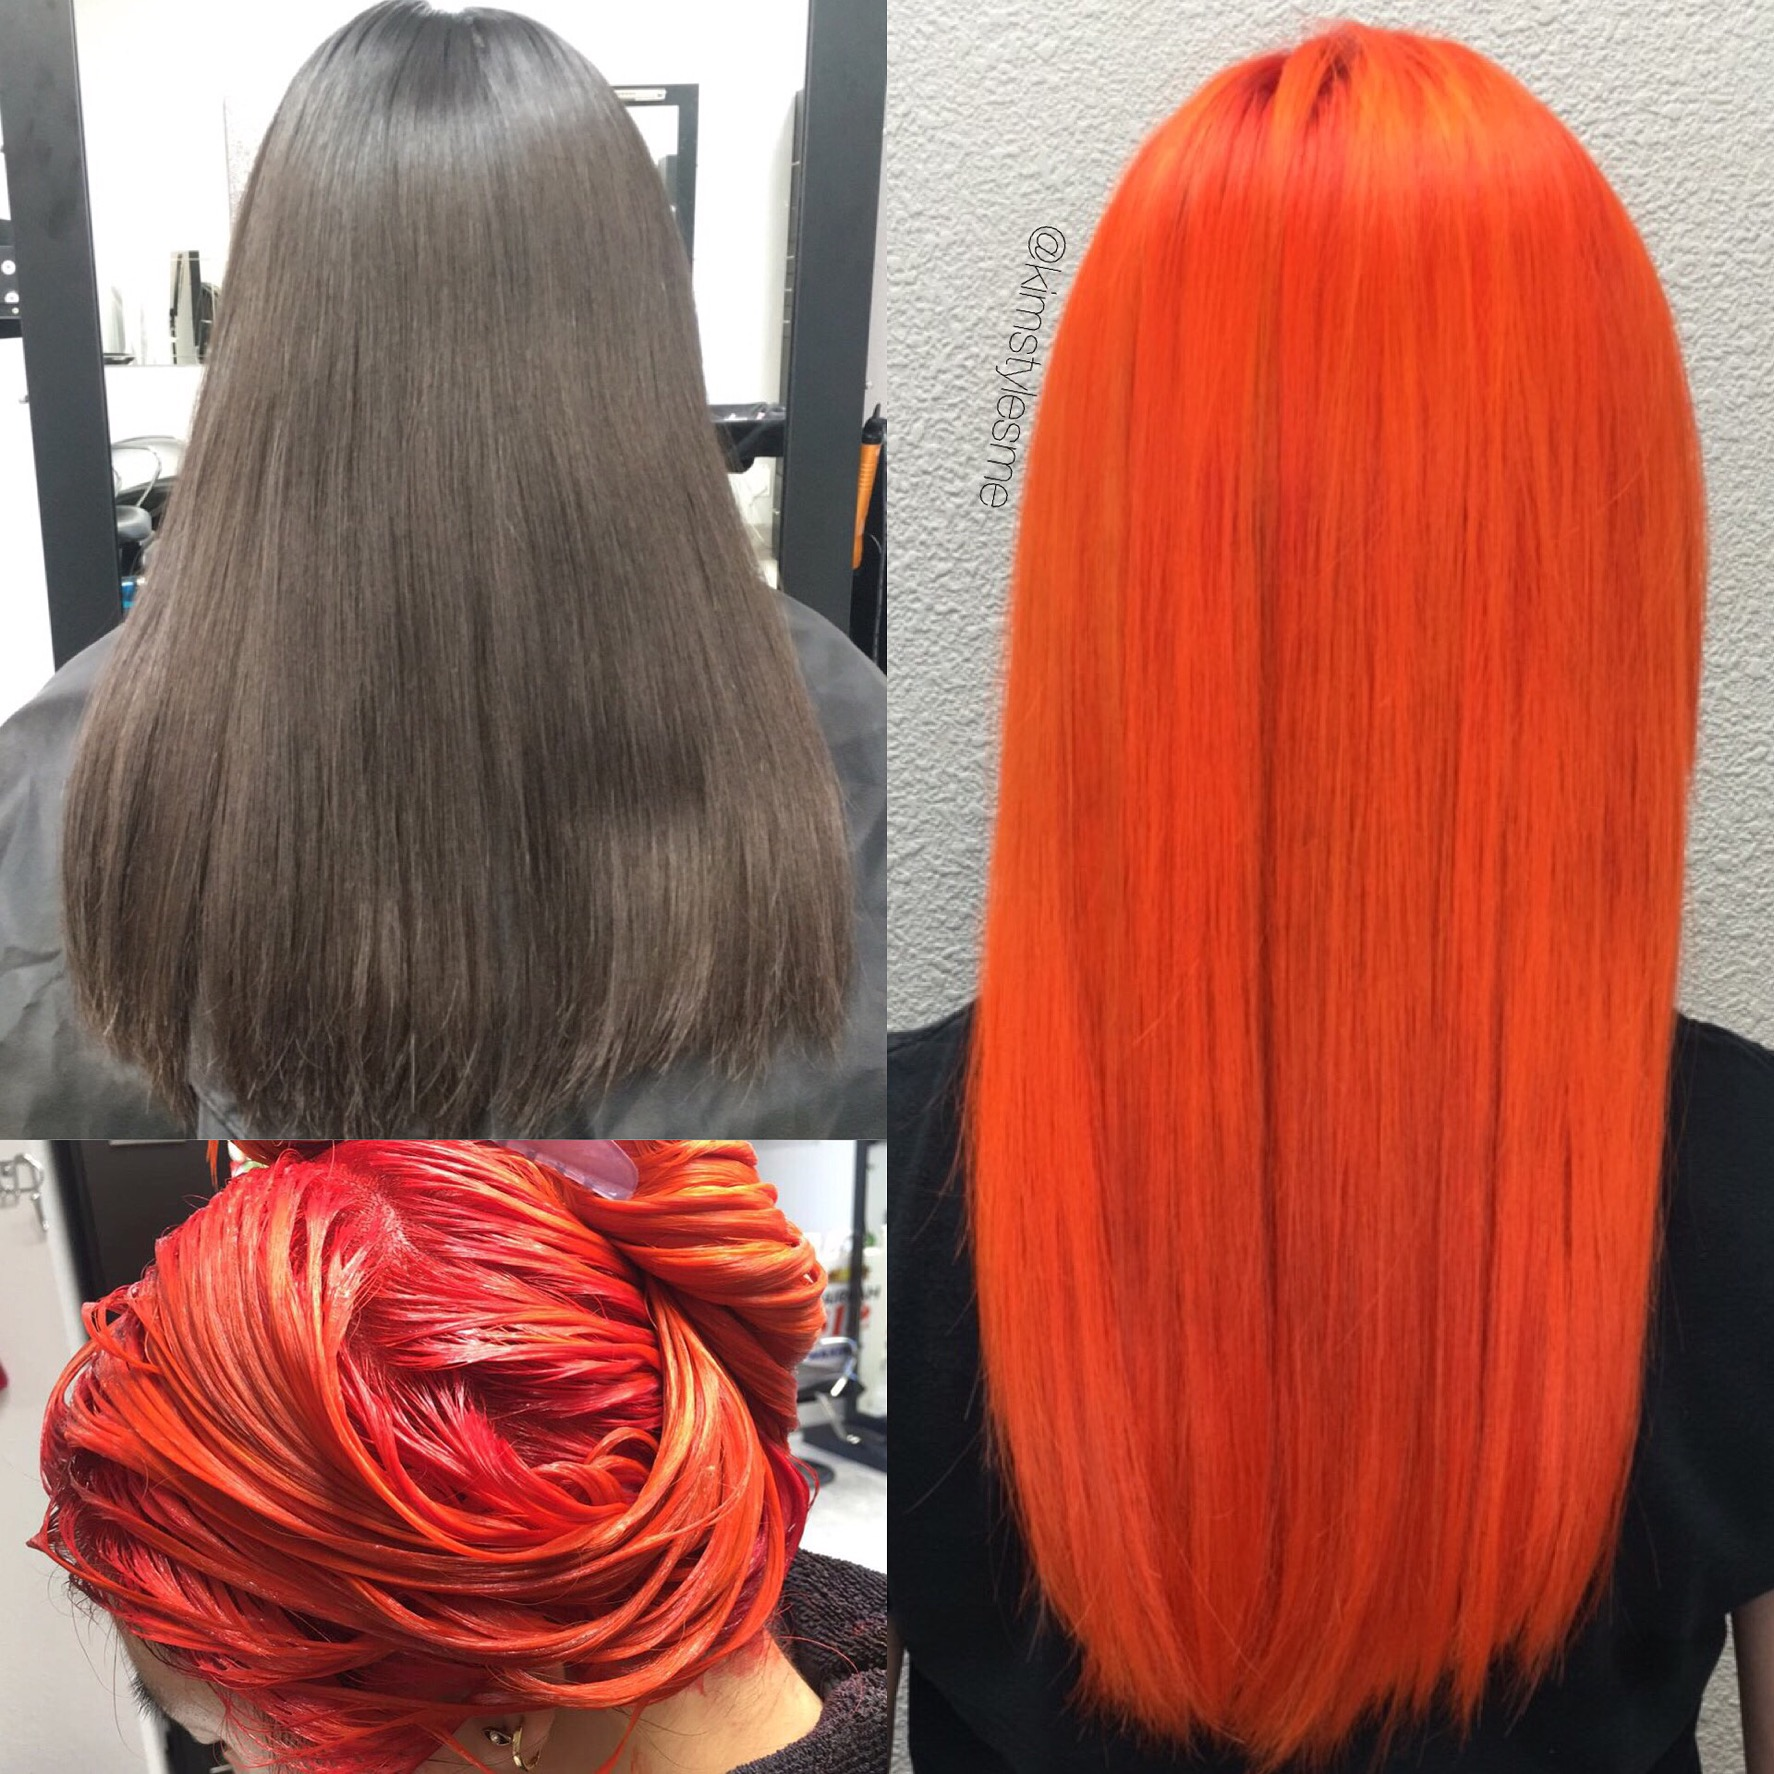 Deep Brown to Bright Orange! Lovely!